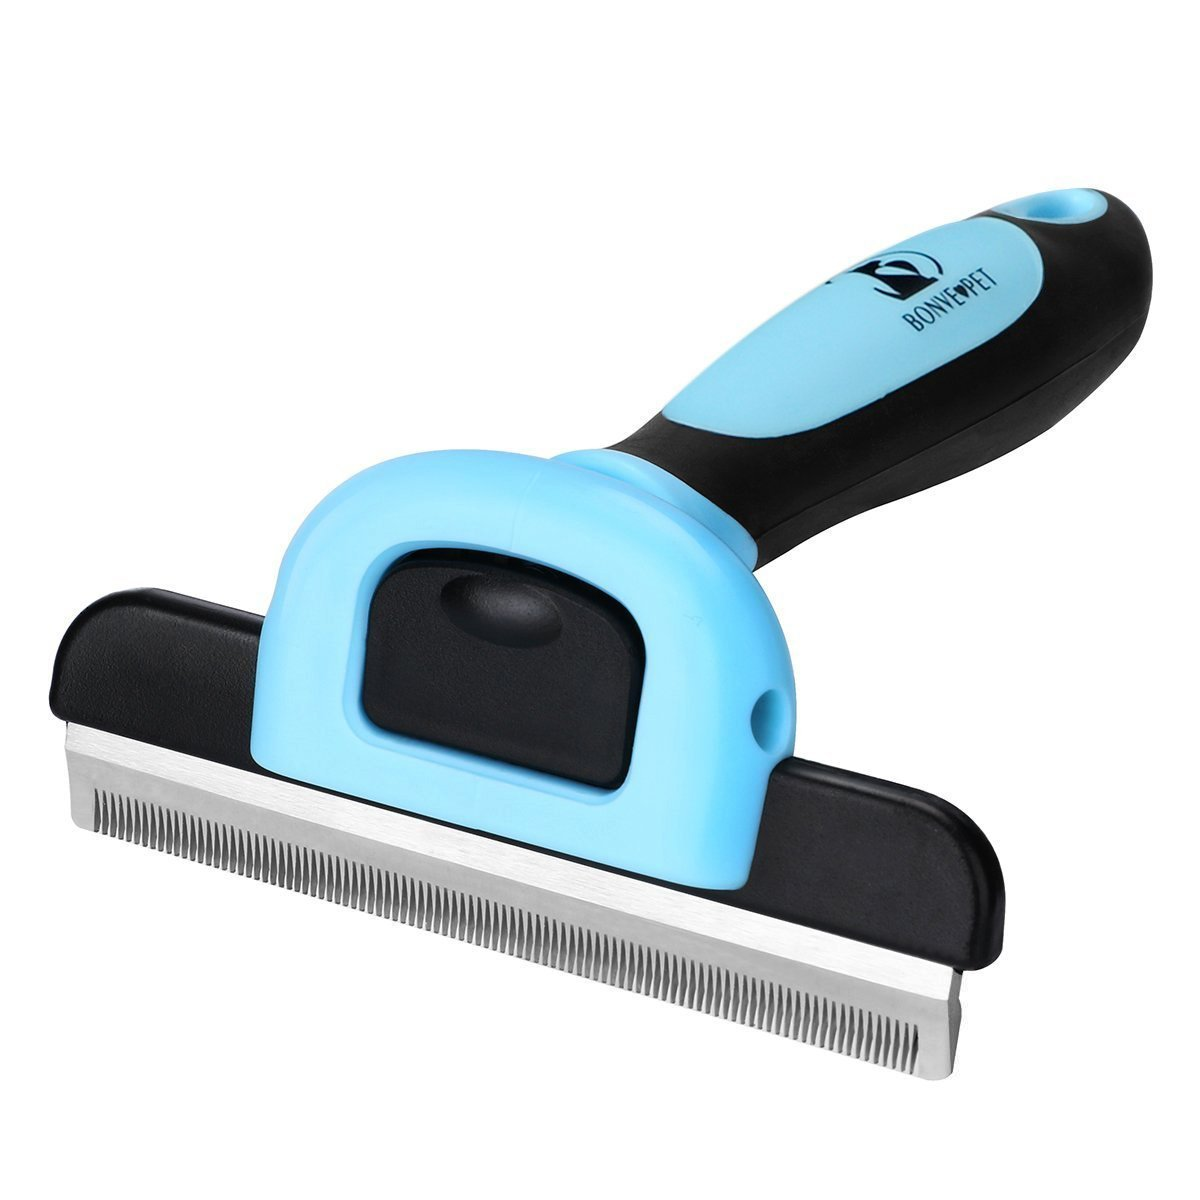 Bonve Pet Dog Brush - Professional Pet Cat Dog Grooming Brush - Effectively Pet Deshedding Brush - Reduces Shedding Up to 95% Best Dog Hair Brush for Small Large Dogs Cats Pets Long Short Hair …